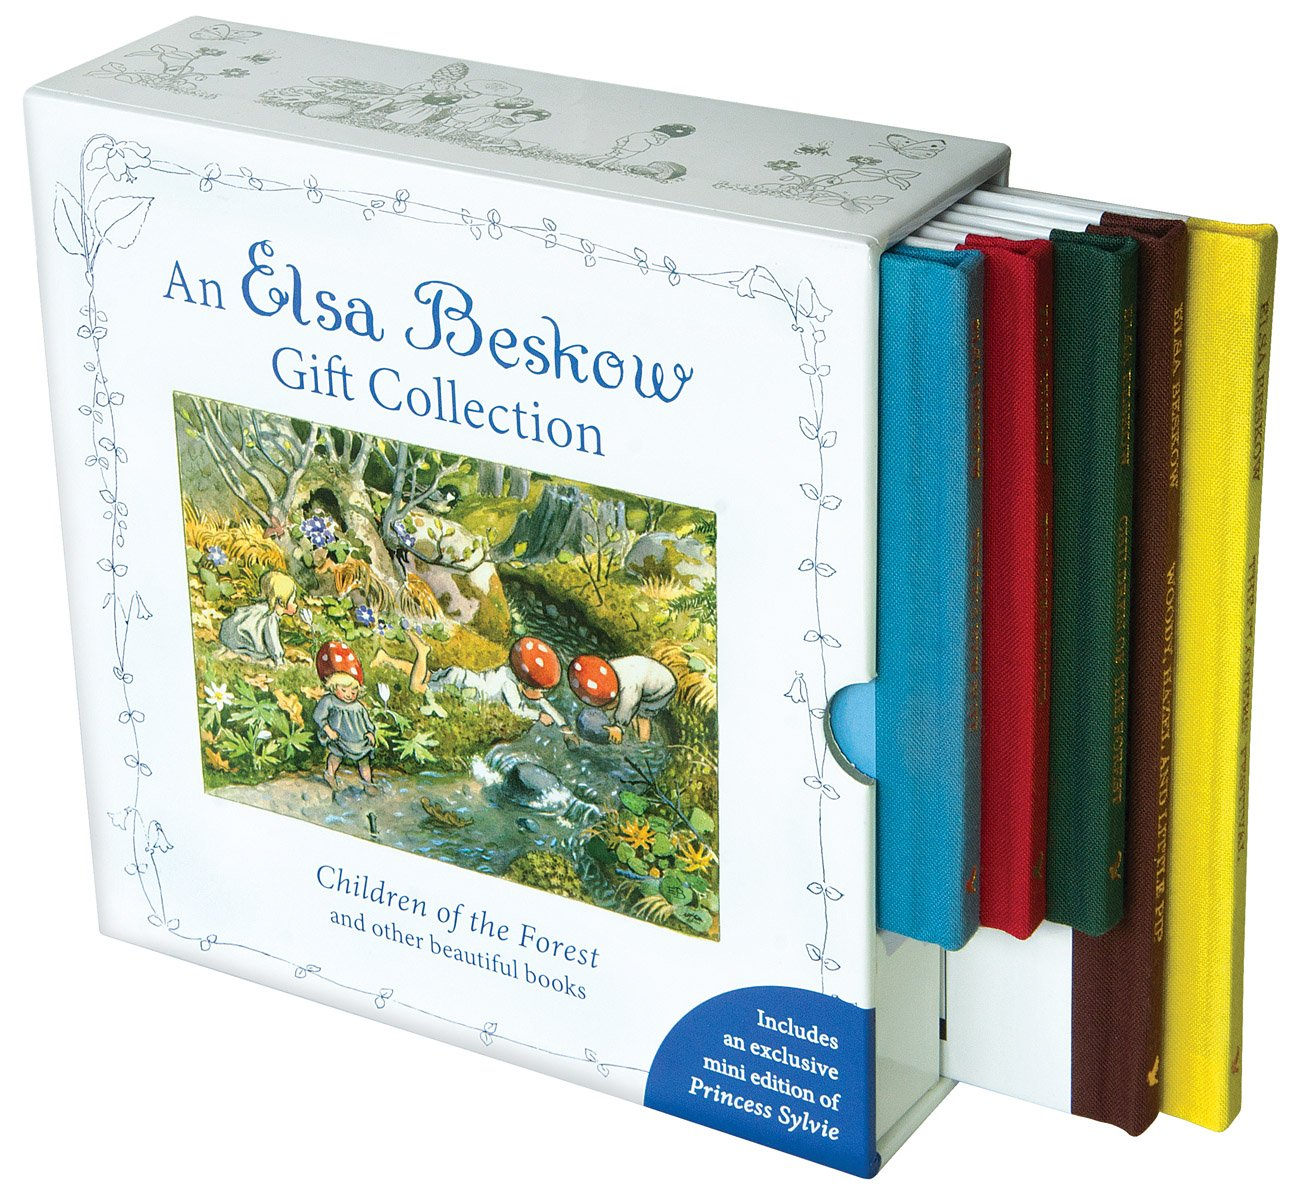 An Elsa Beskow Gift Collection: Children of the Forest and other beautiful books by FLO